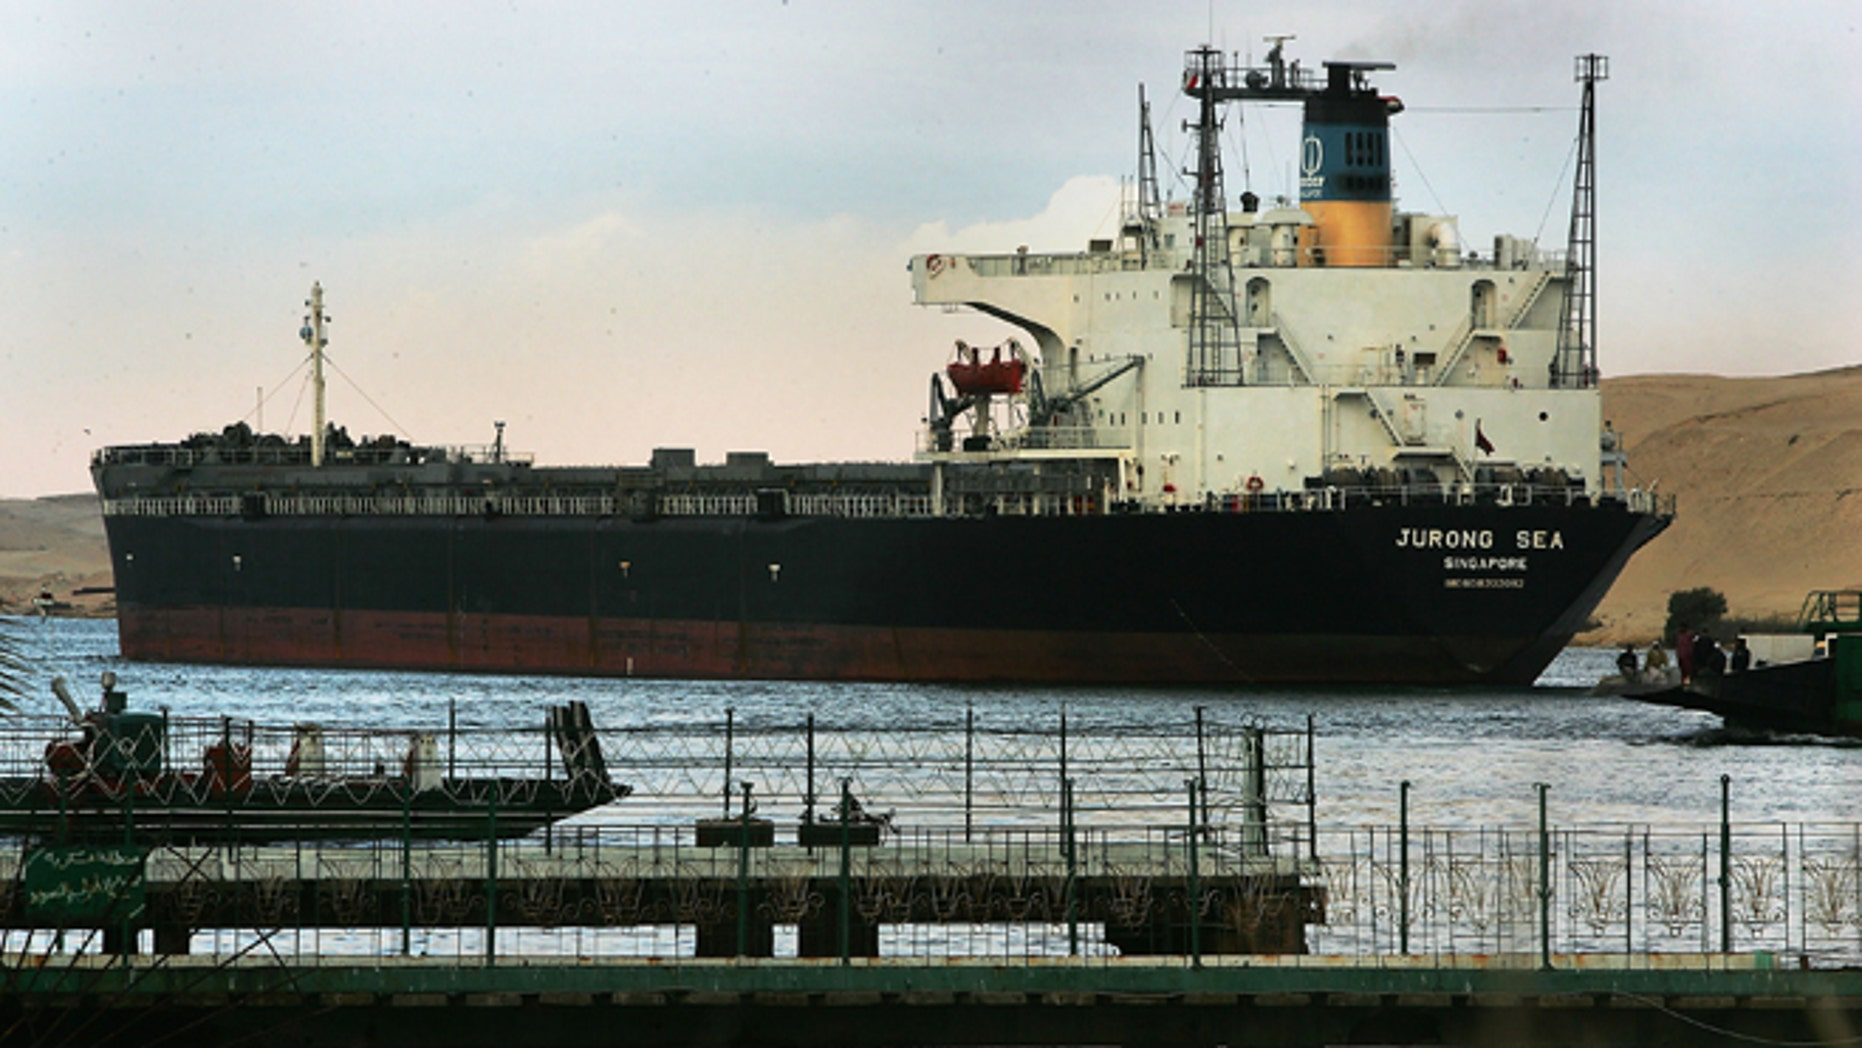 An international oil tanker passes through the Suez canal in Ismailia, Egypt December 14, 2004.  (Photo by Scott Nelson/Getty Images)